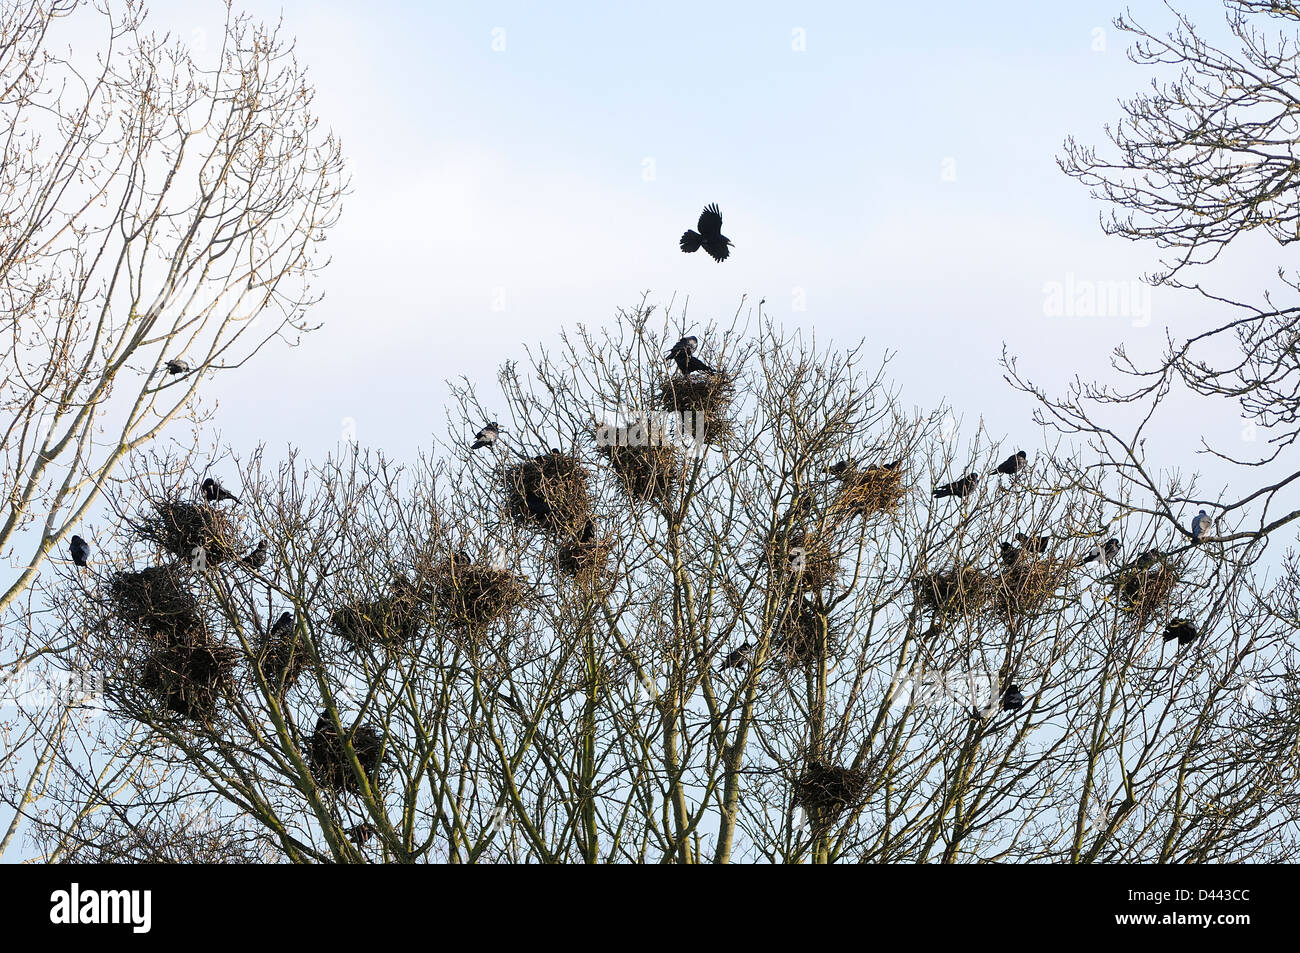 Rook (Corvus frugilegus) in flight over rookery, Oxfordshire, England, March - Stock Image